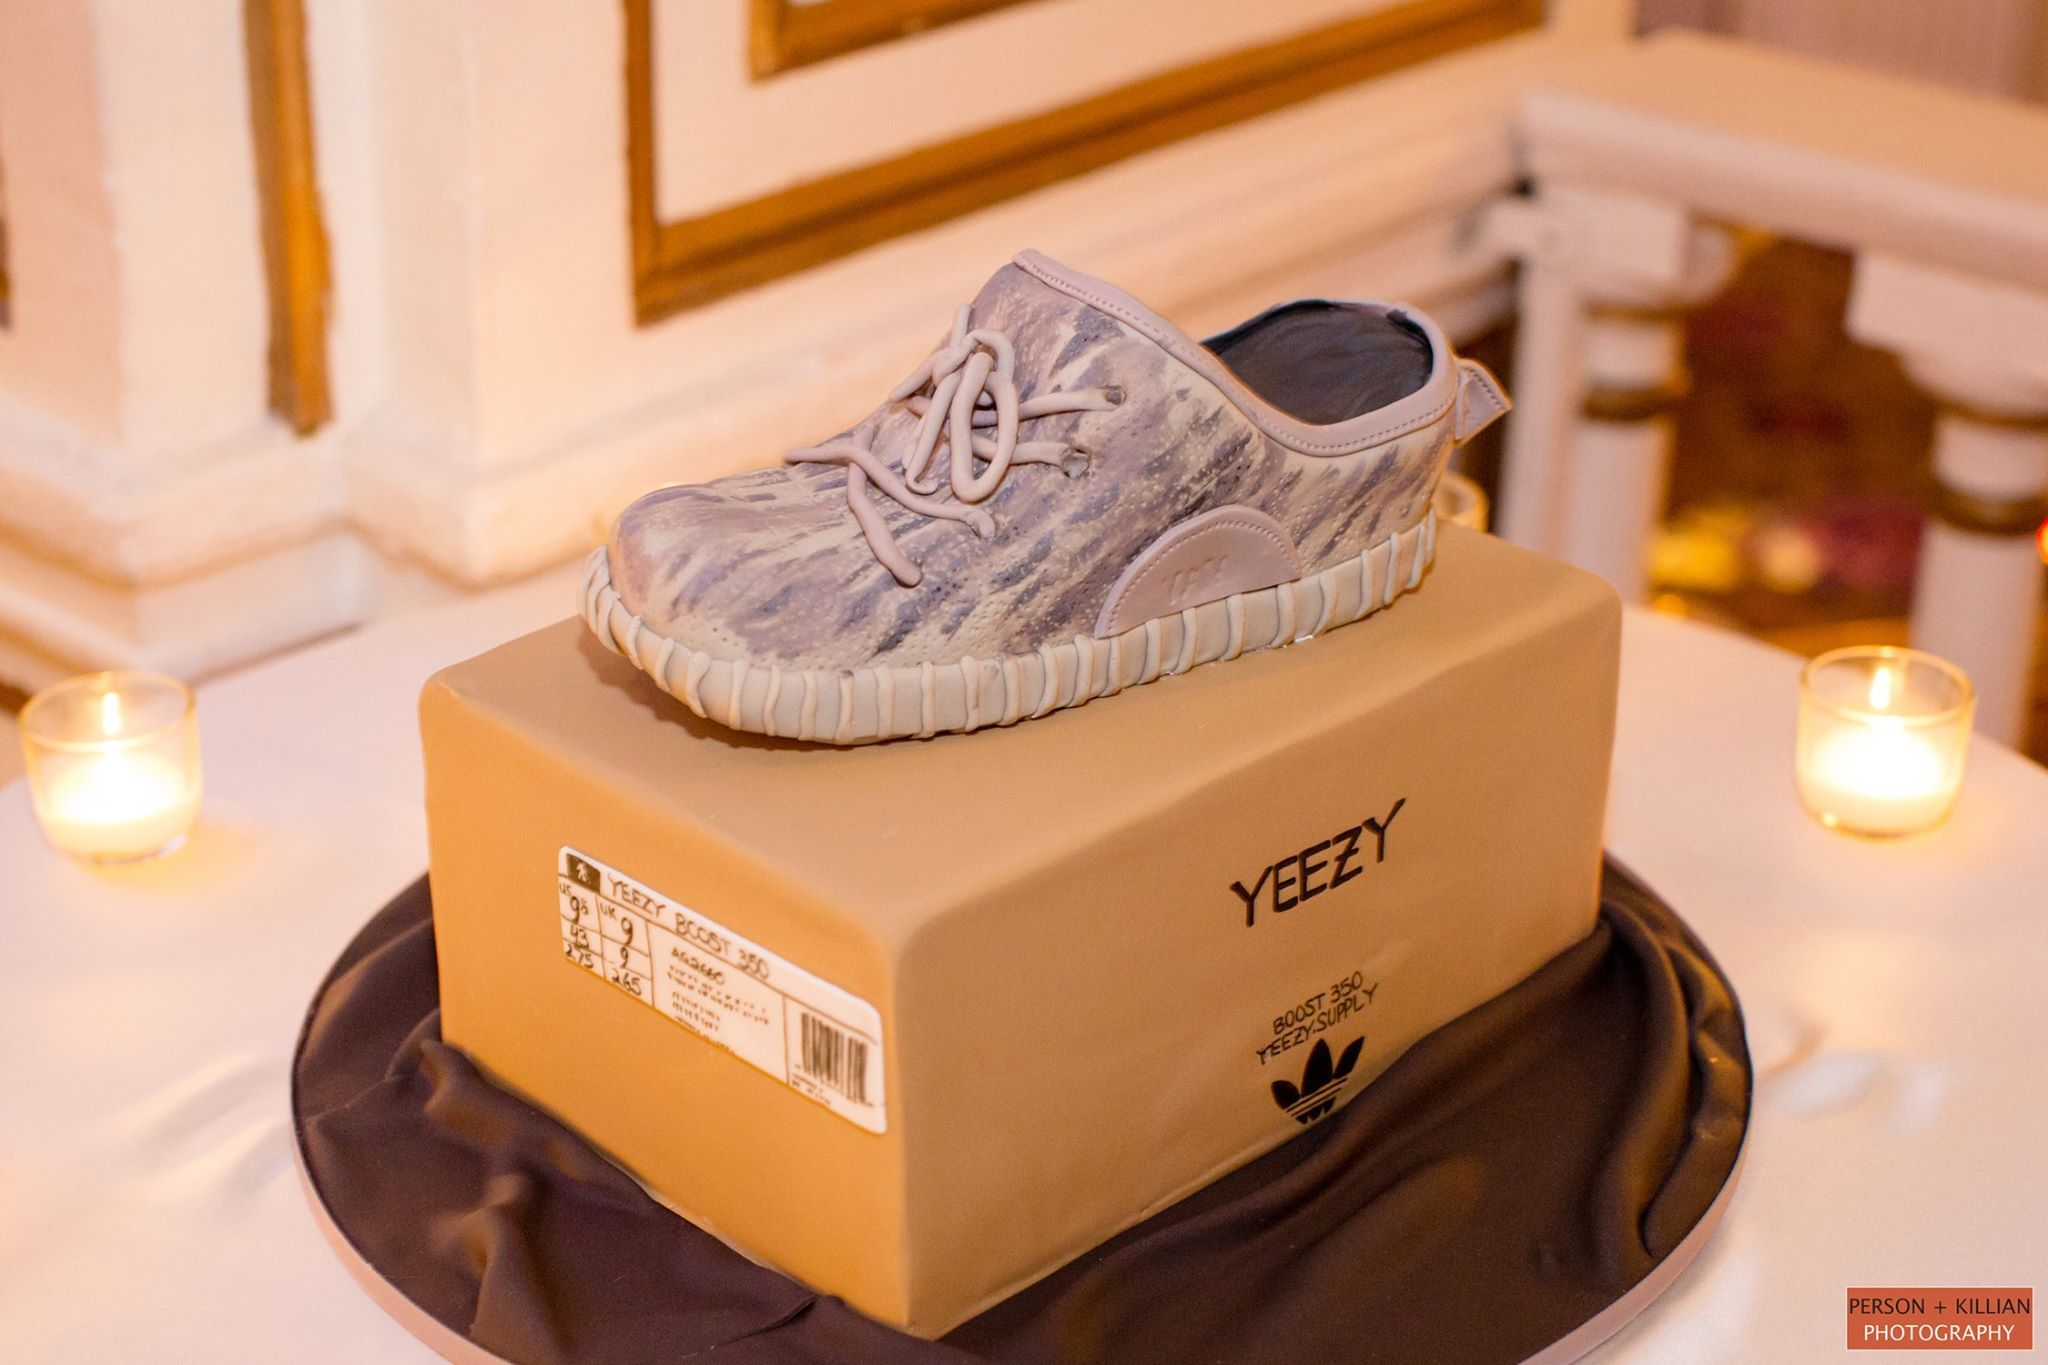 fe089b6ba3b Groom s Cake at Fairmont Copley Plaza. Yeezy Cake for fans of Kanye West!  Person + Killian Photography.